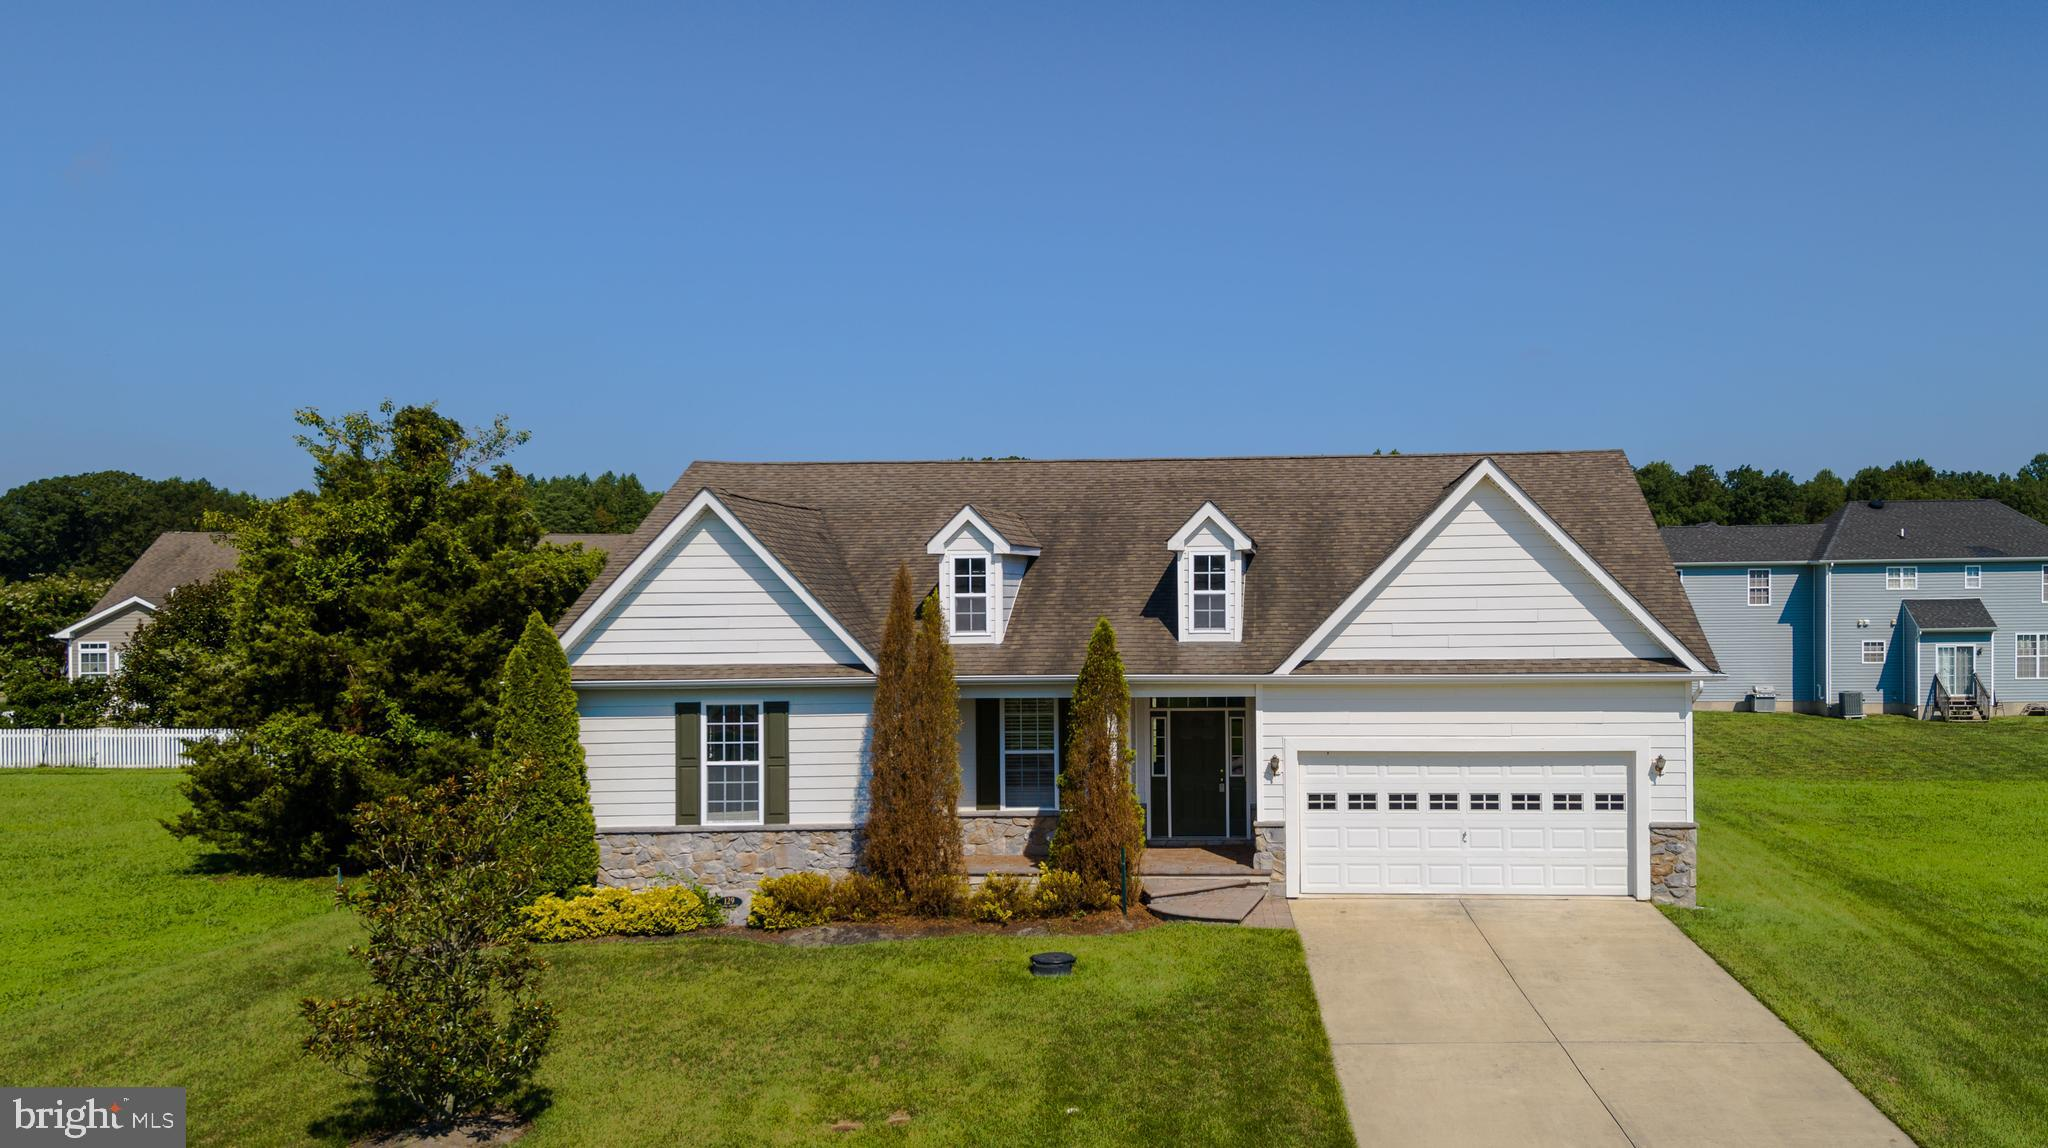 Great Home and ready for someone to make it their home, just a little TLC will take this diamond in